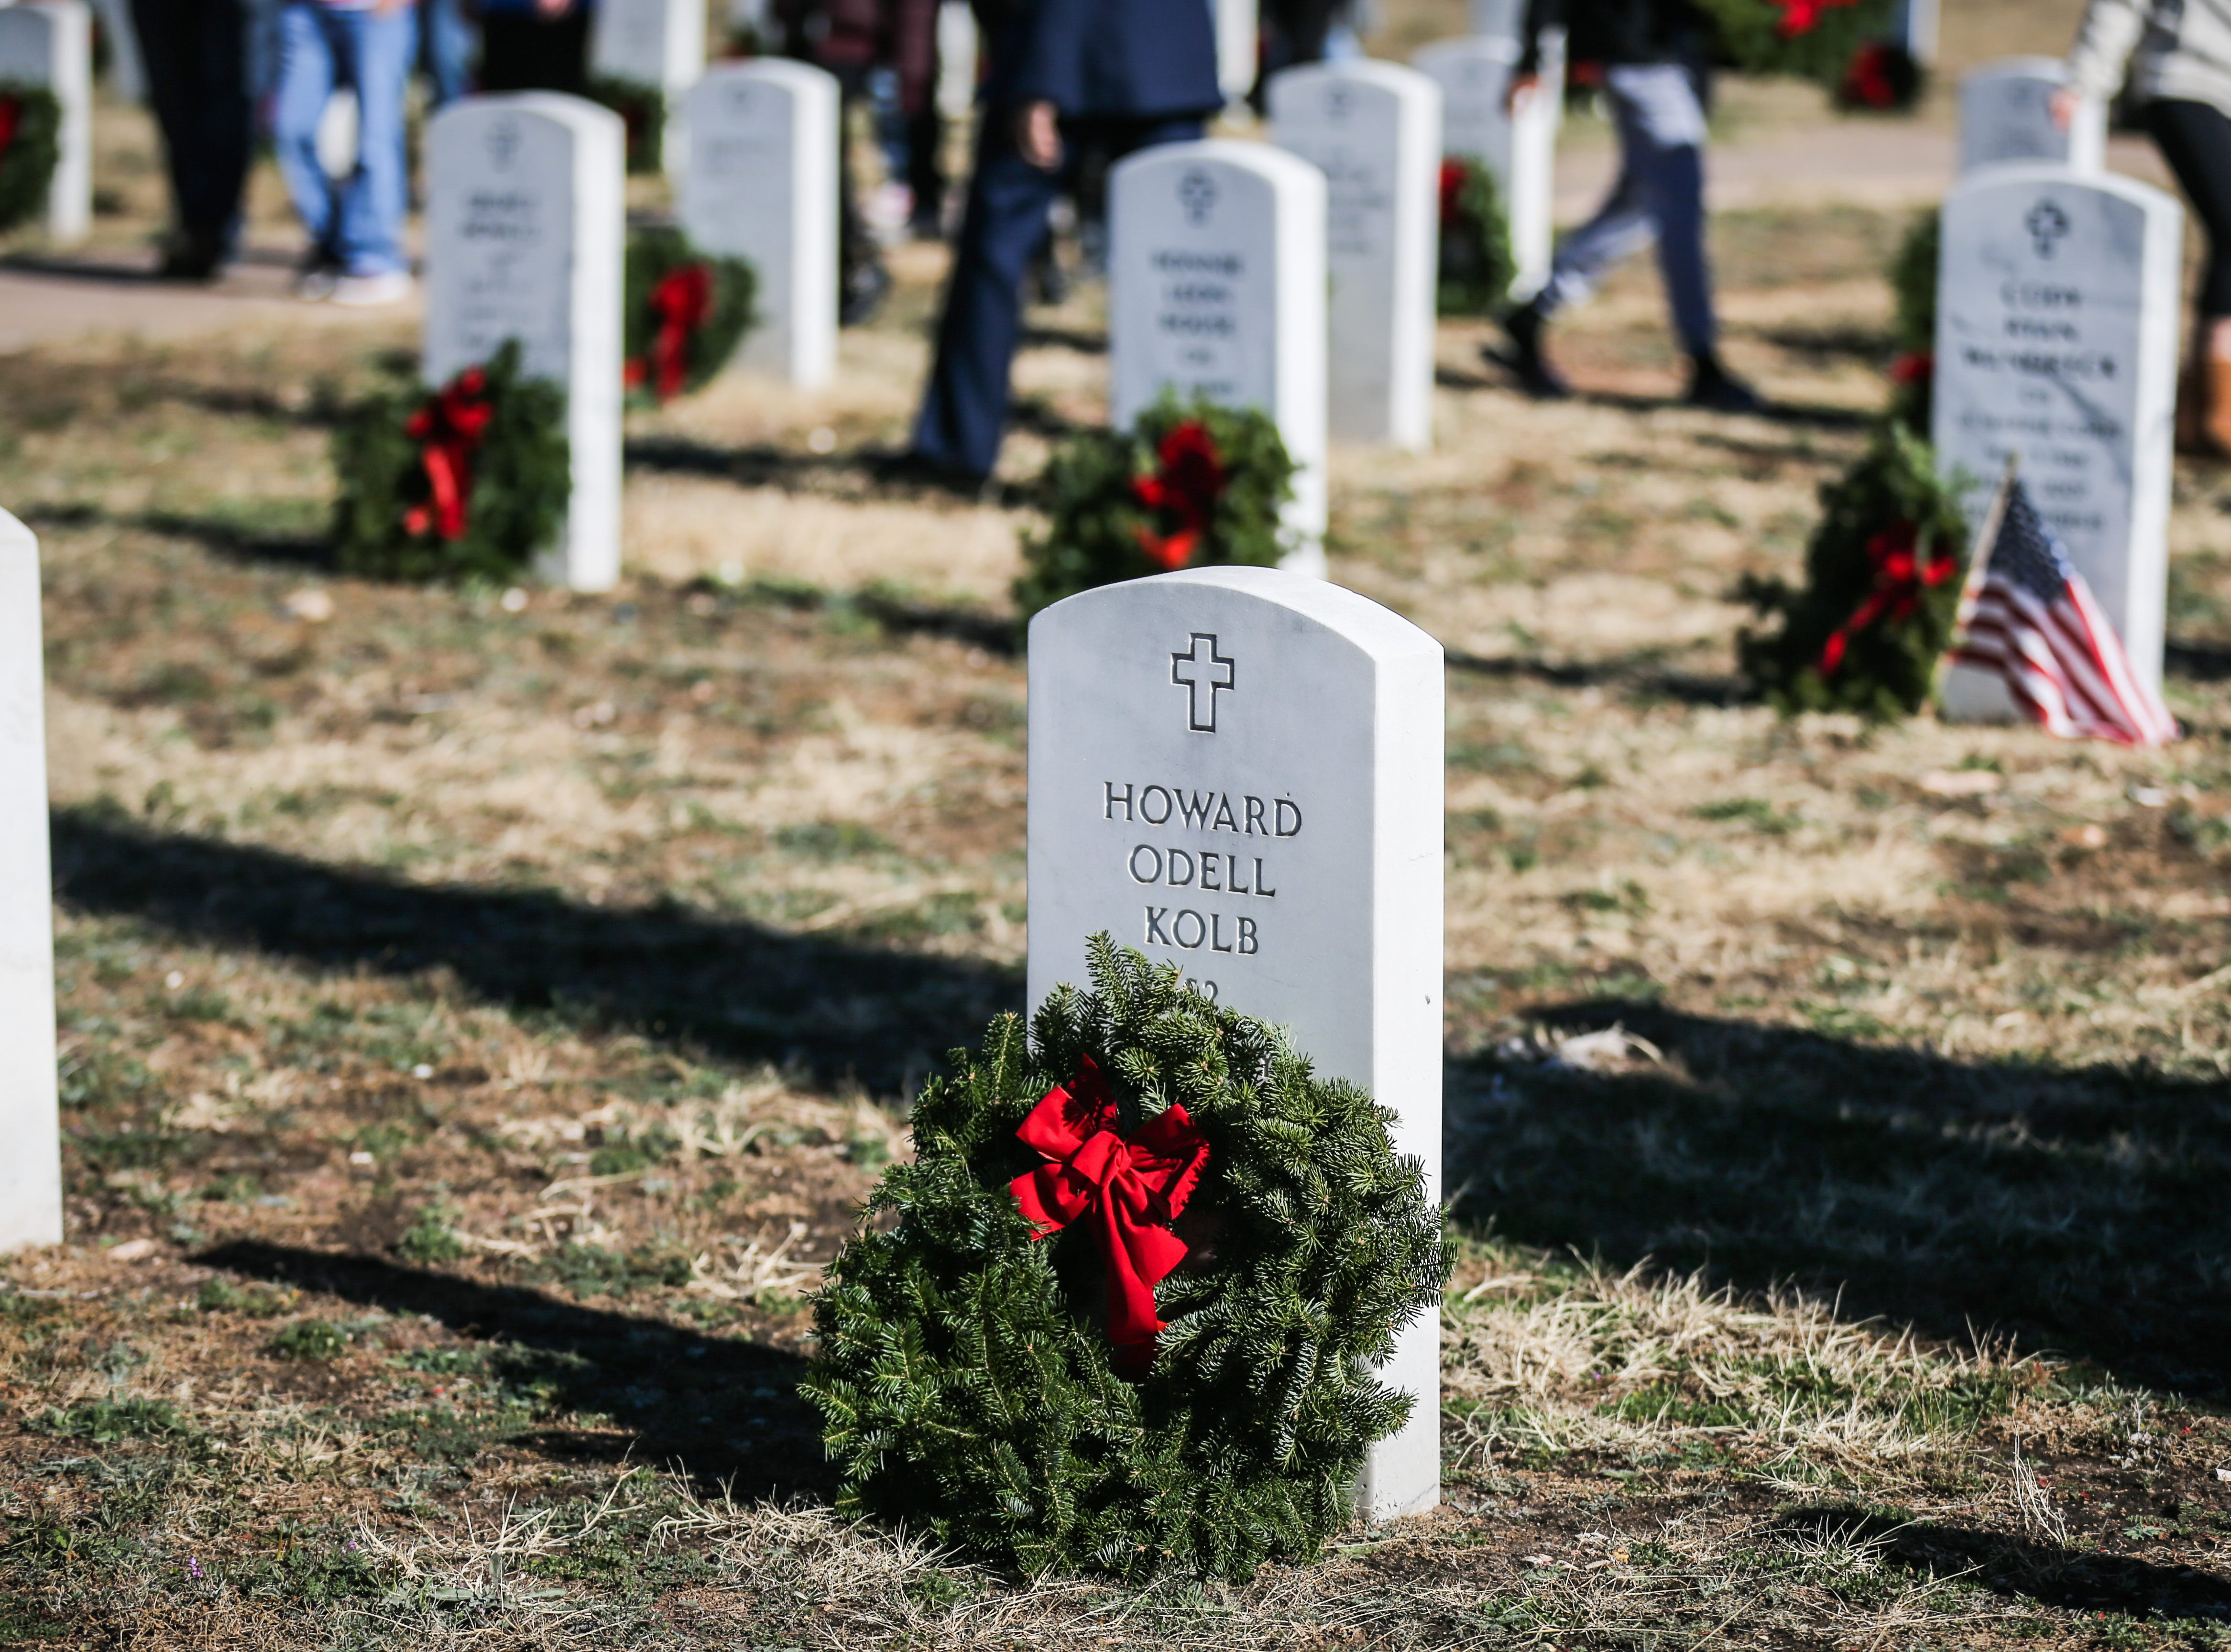 Participants placed wreaths on graves during Wreaths Across America Saturday, Dec. 15, 2018, at Belvedere Memorial Park.